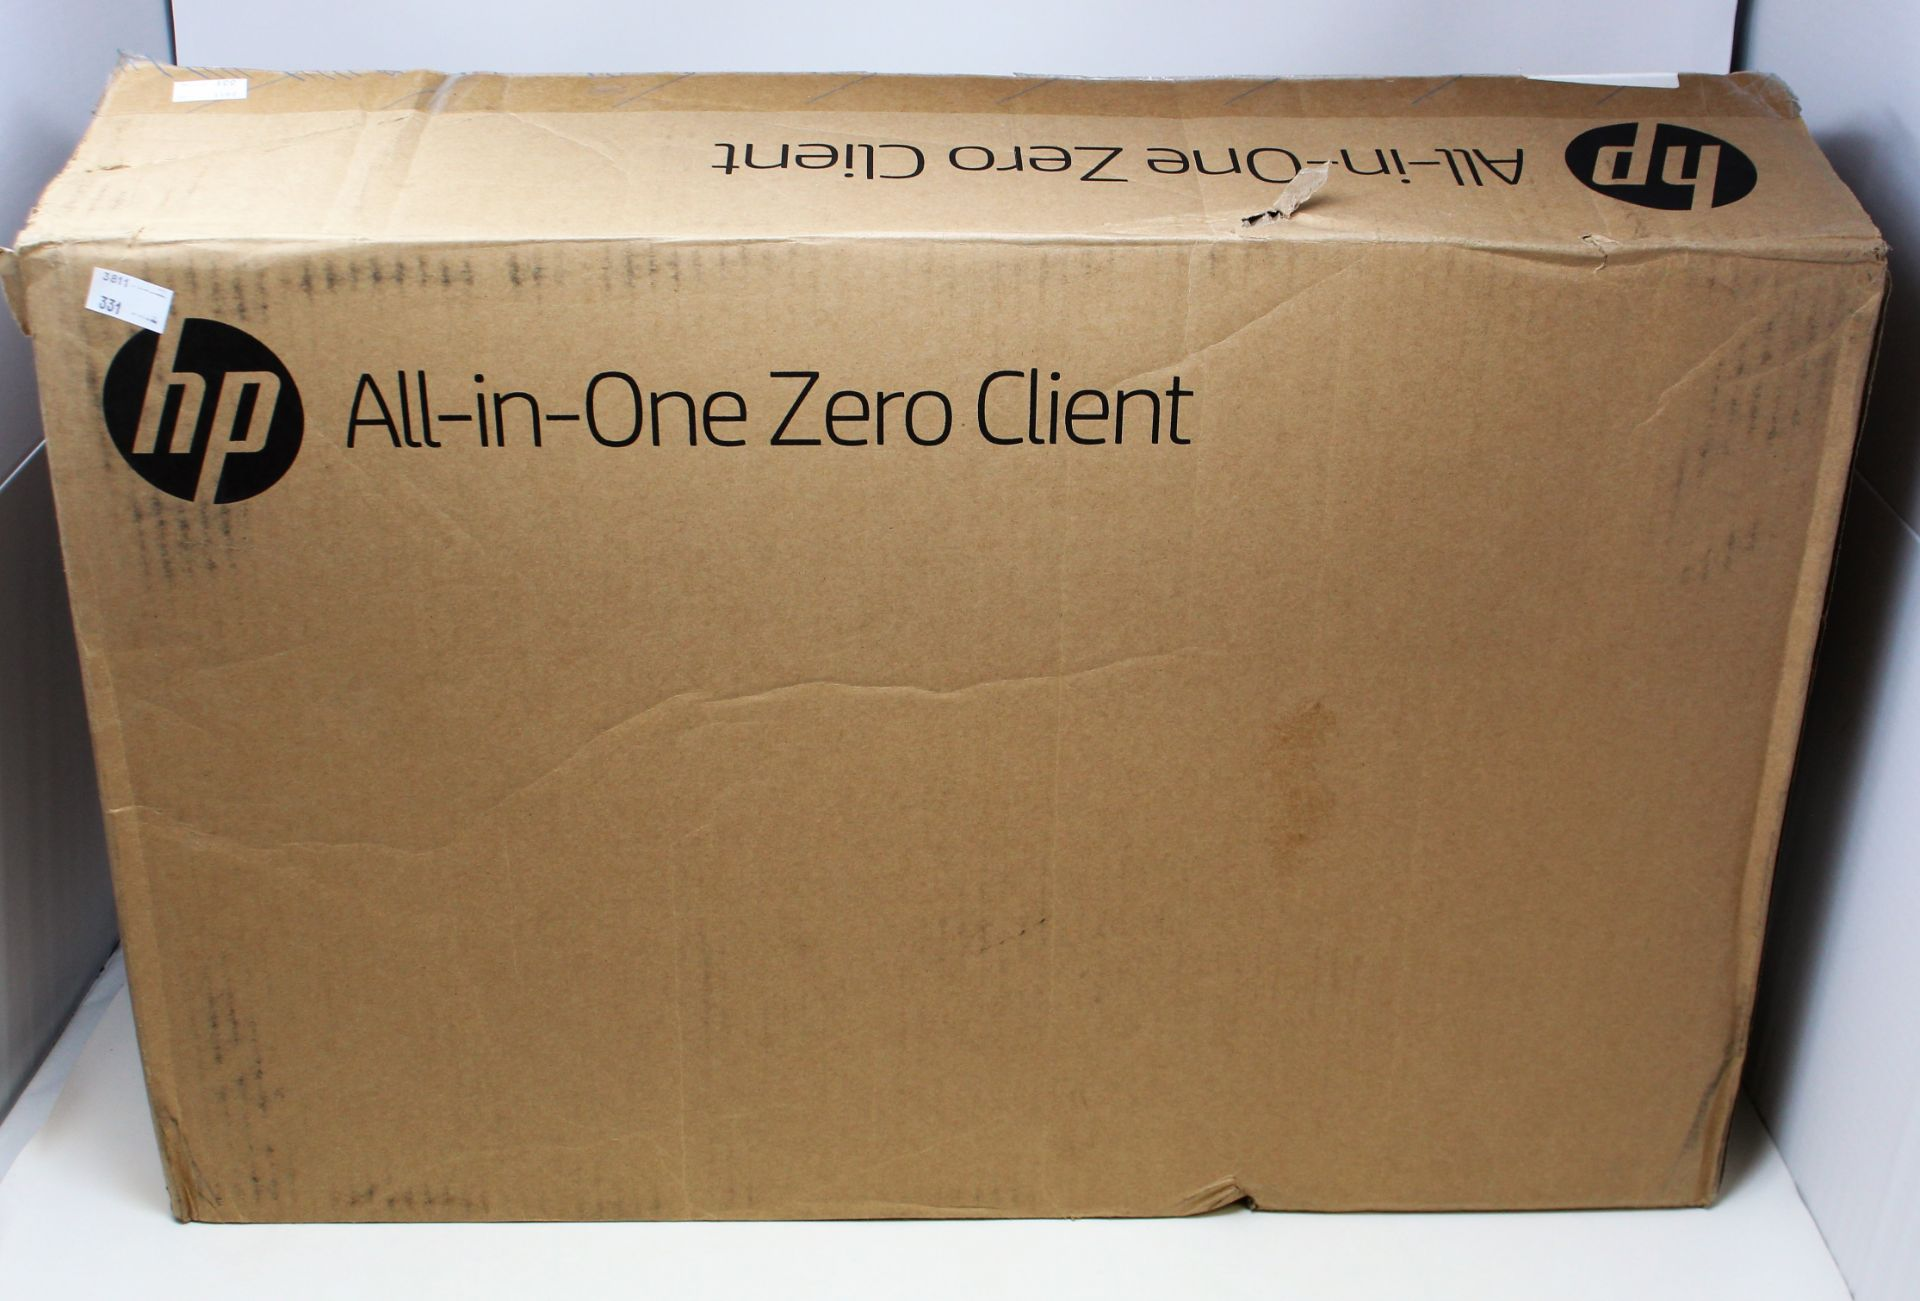 A boxed as new HP t310 G2 All-in-One Zero Client (No OS) (P/N: 3CN12AT#ABU Serial: CNV951B1BW) (